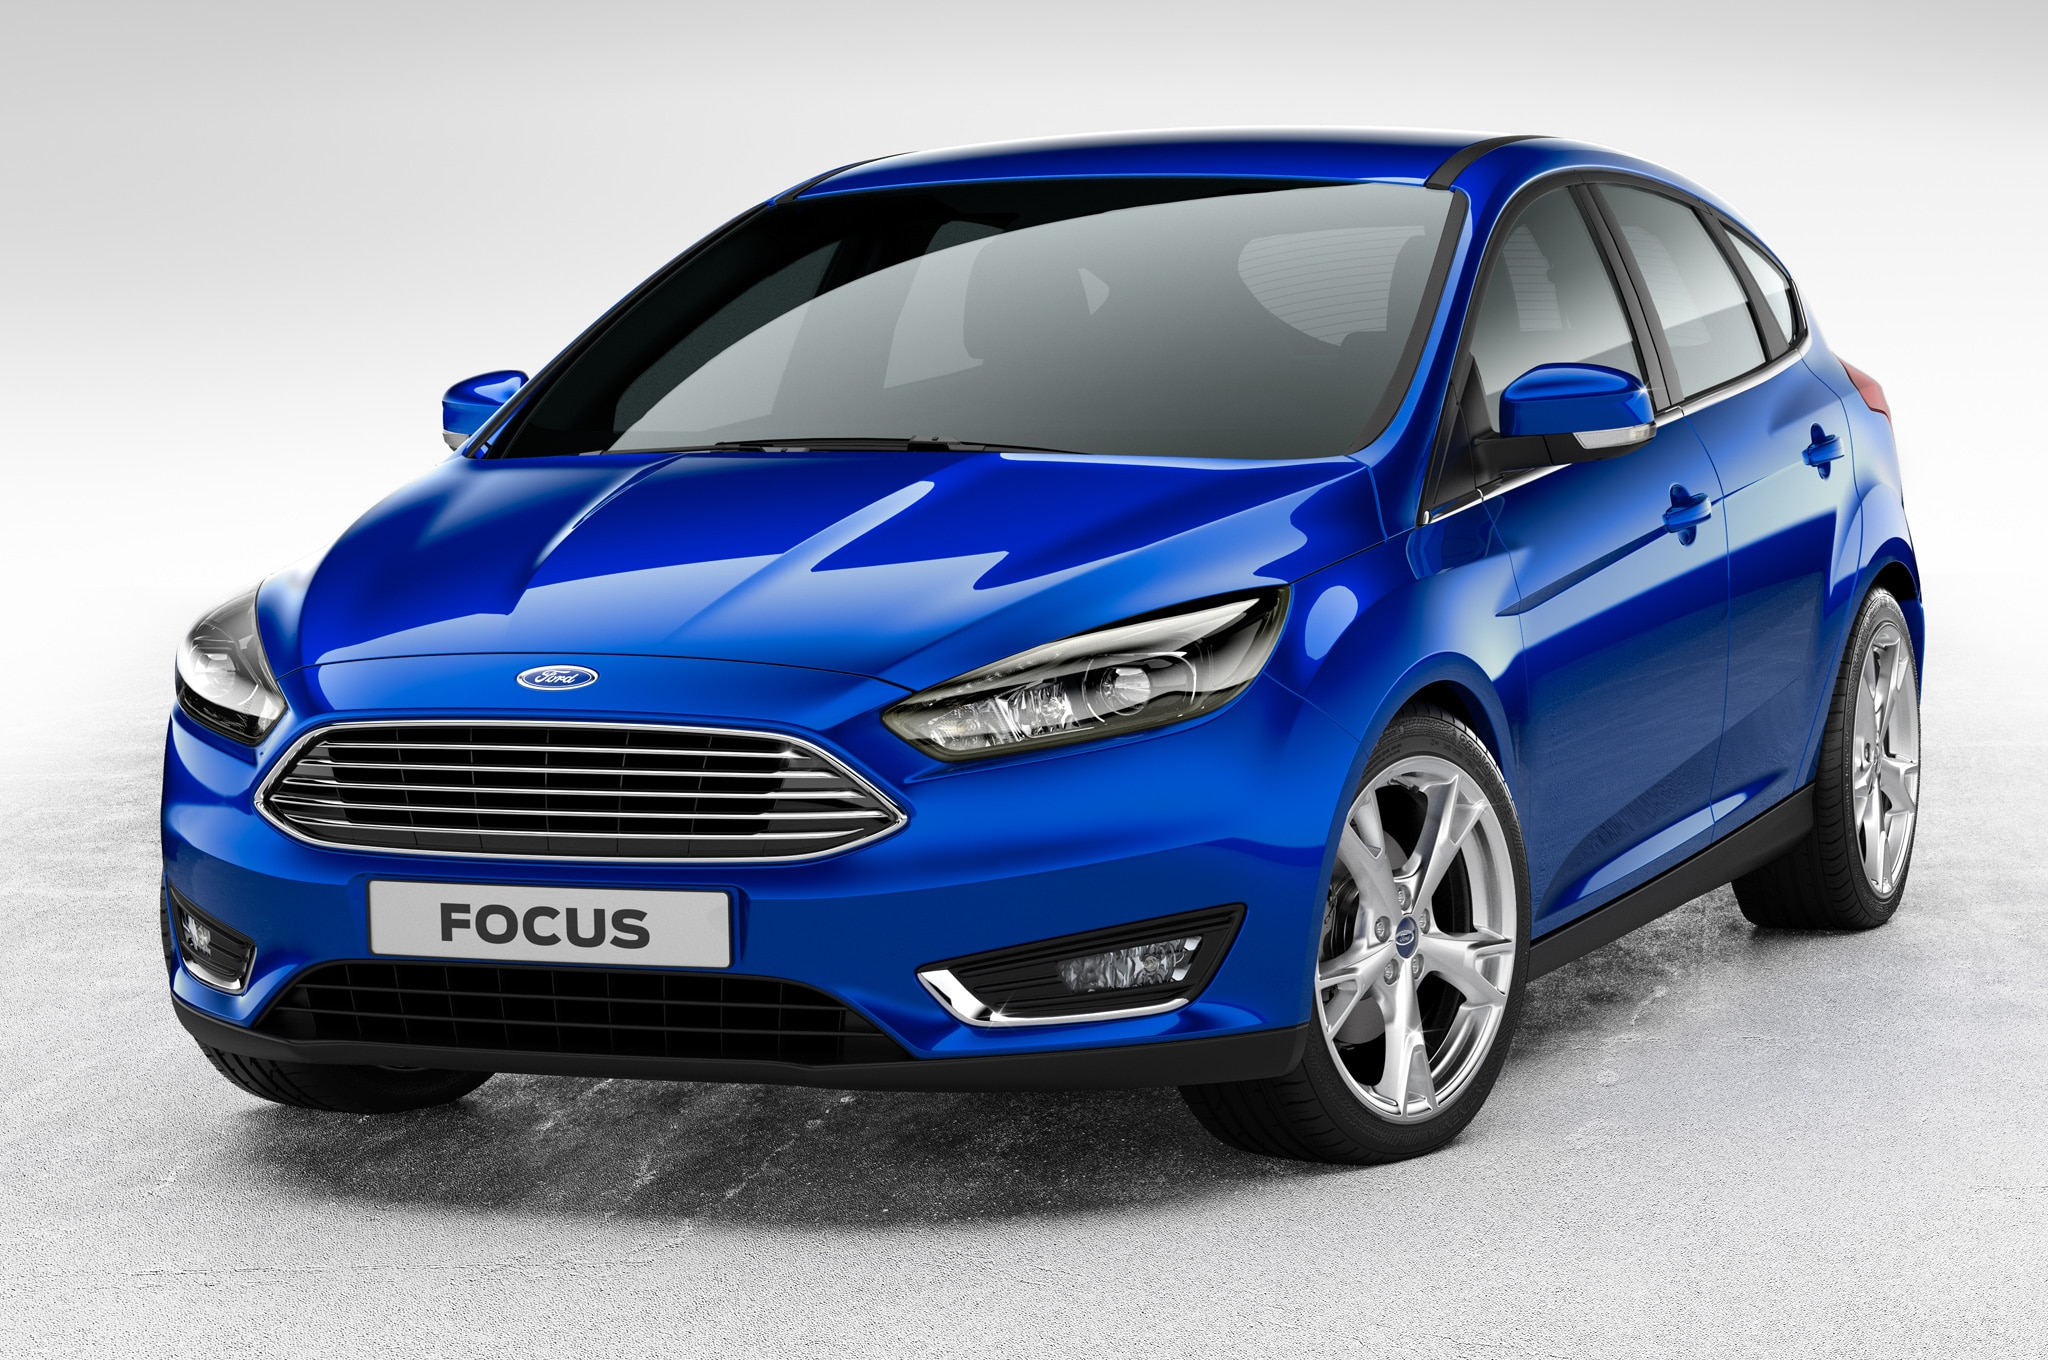 focus ford vistazo primer hatchback este